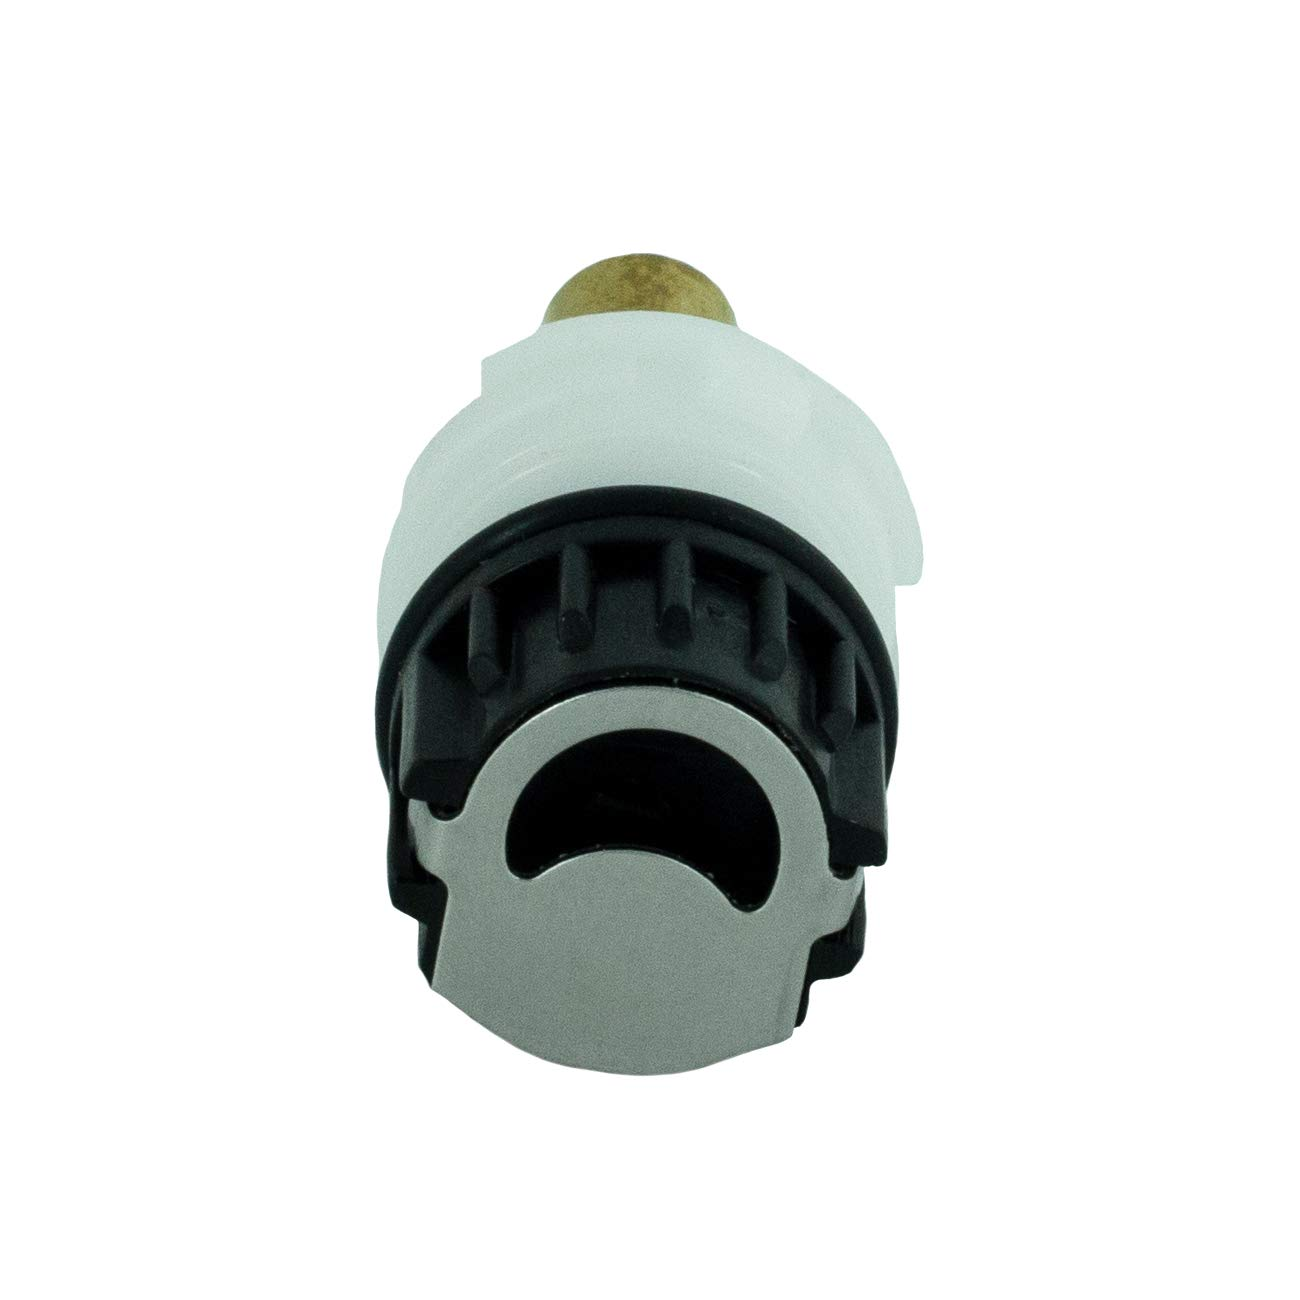 Replacement Stem Assembly for Delta Faucet RP25513 - - Amazon.com